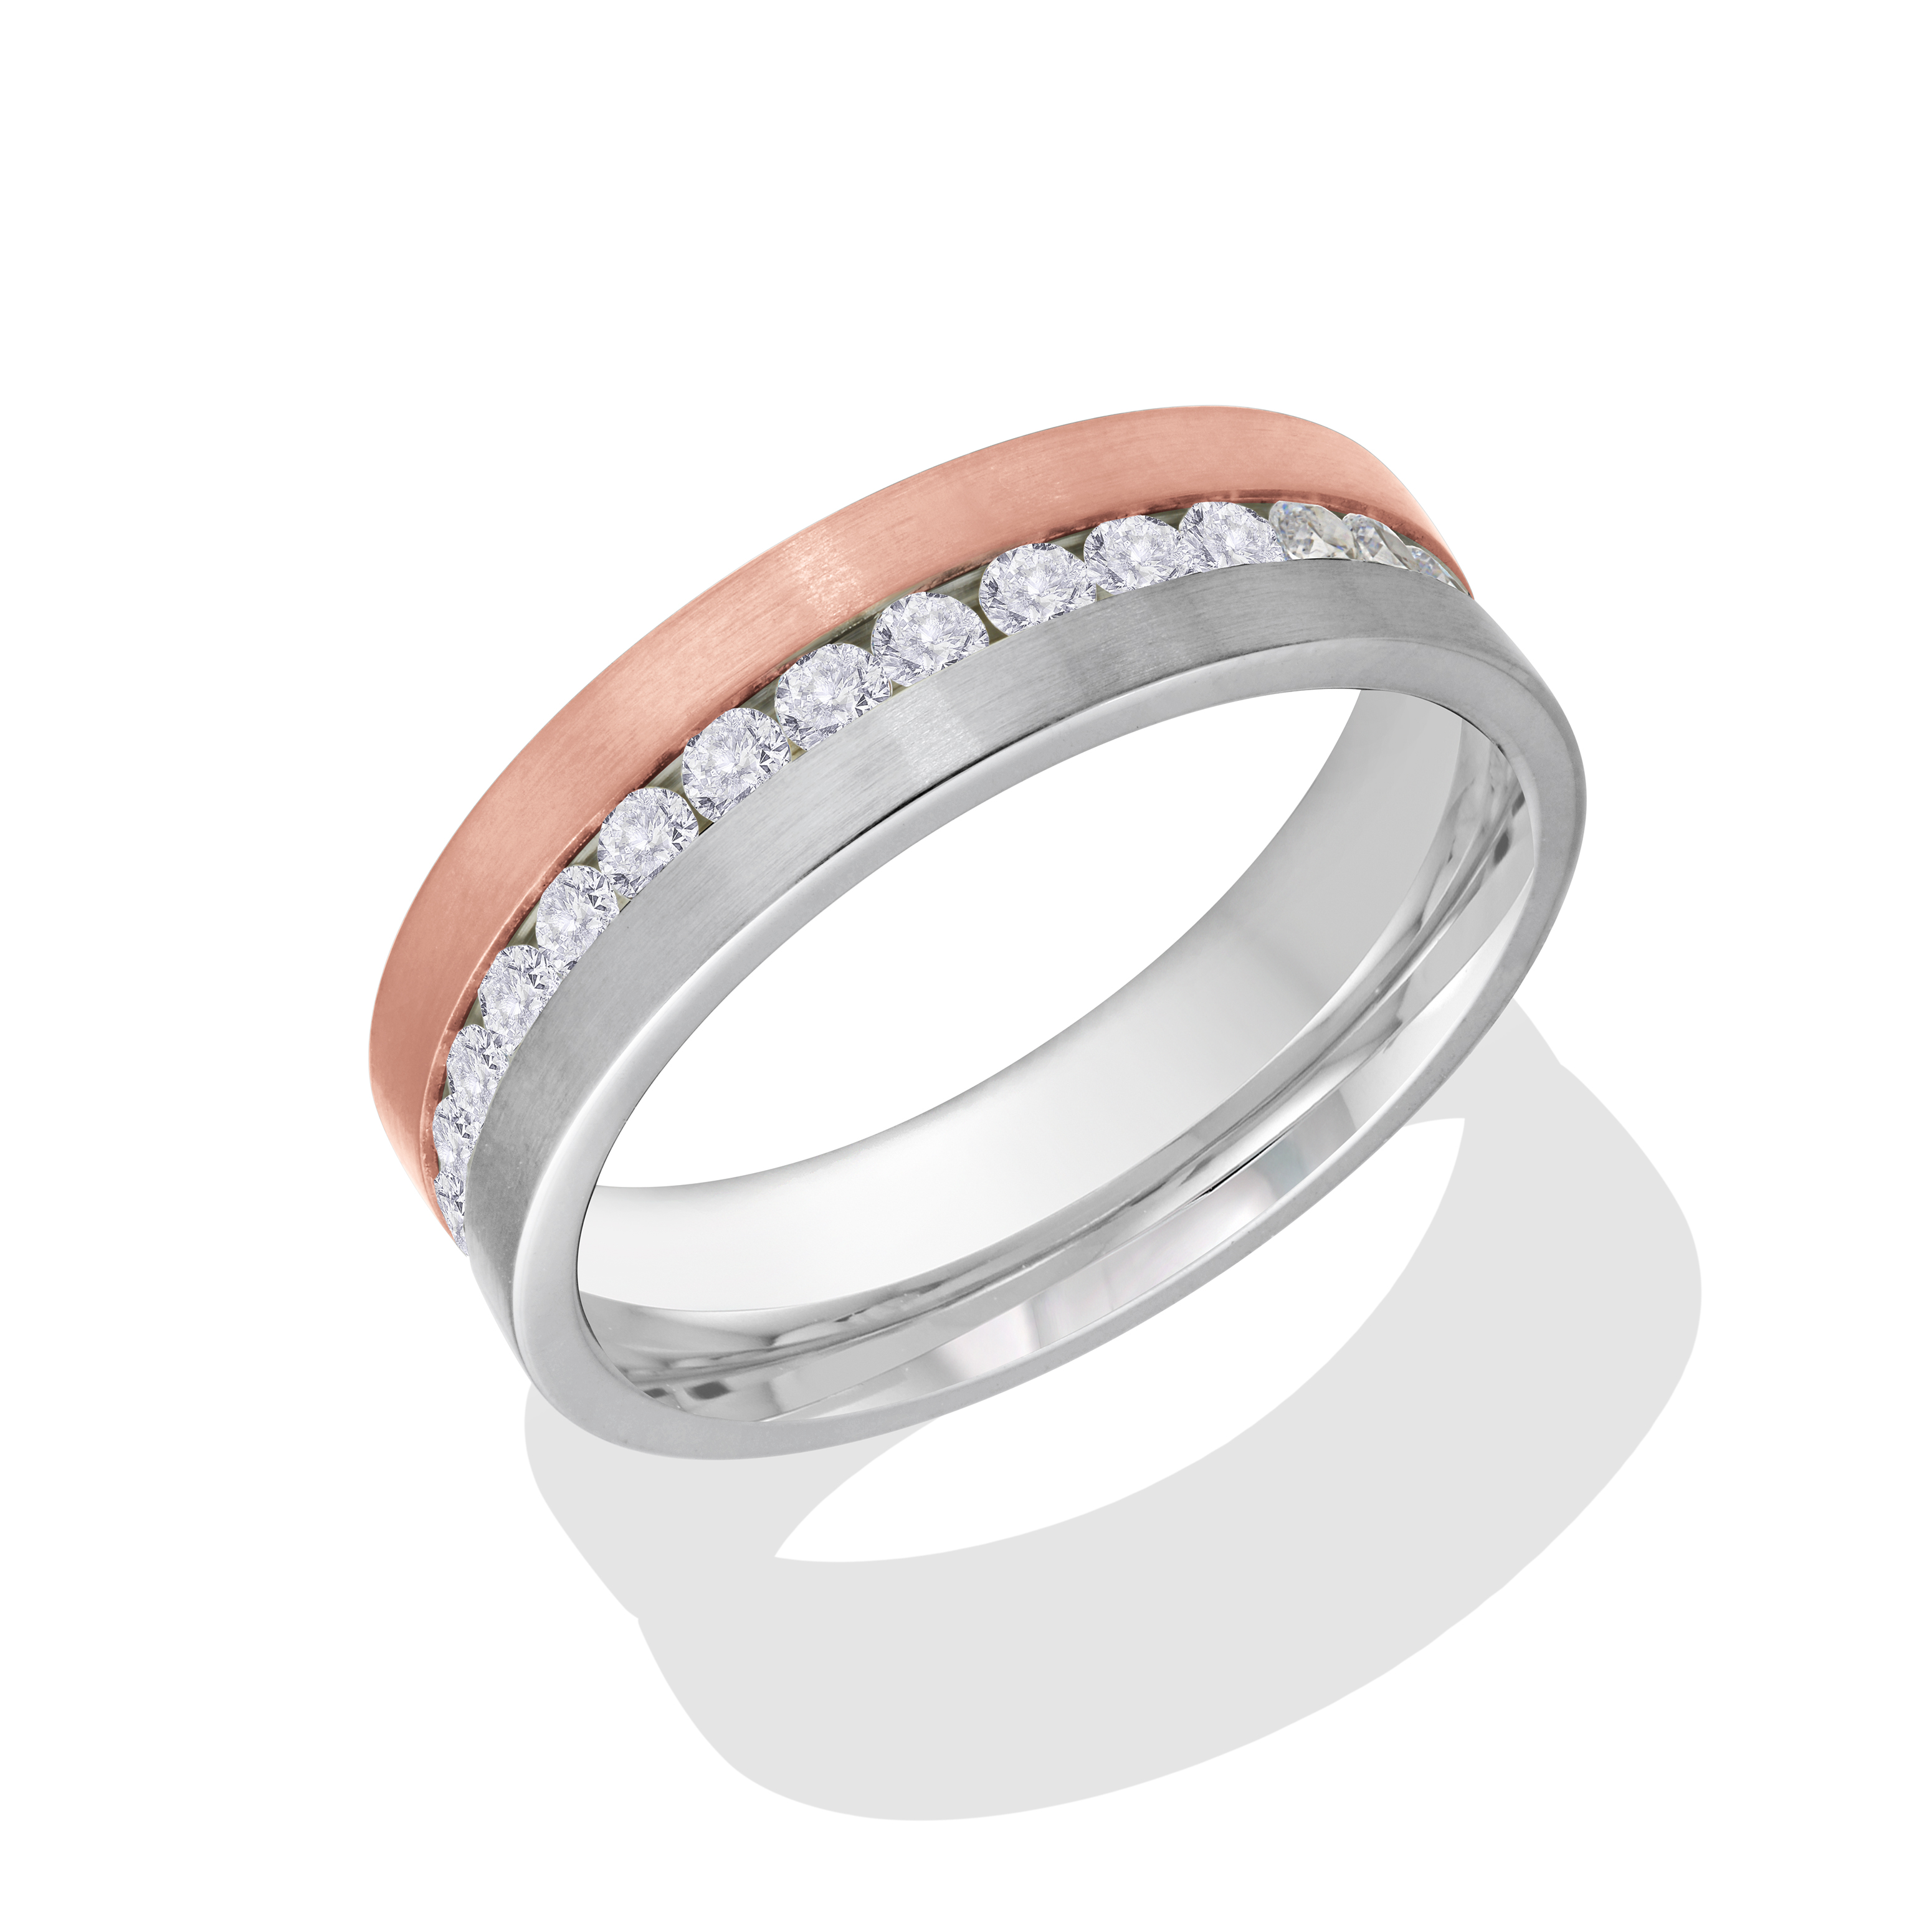 Eternity band for woman - 2-tone stainless steel & Cubic zirconia